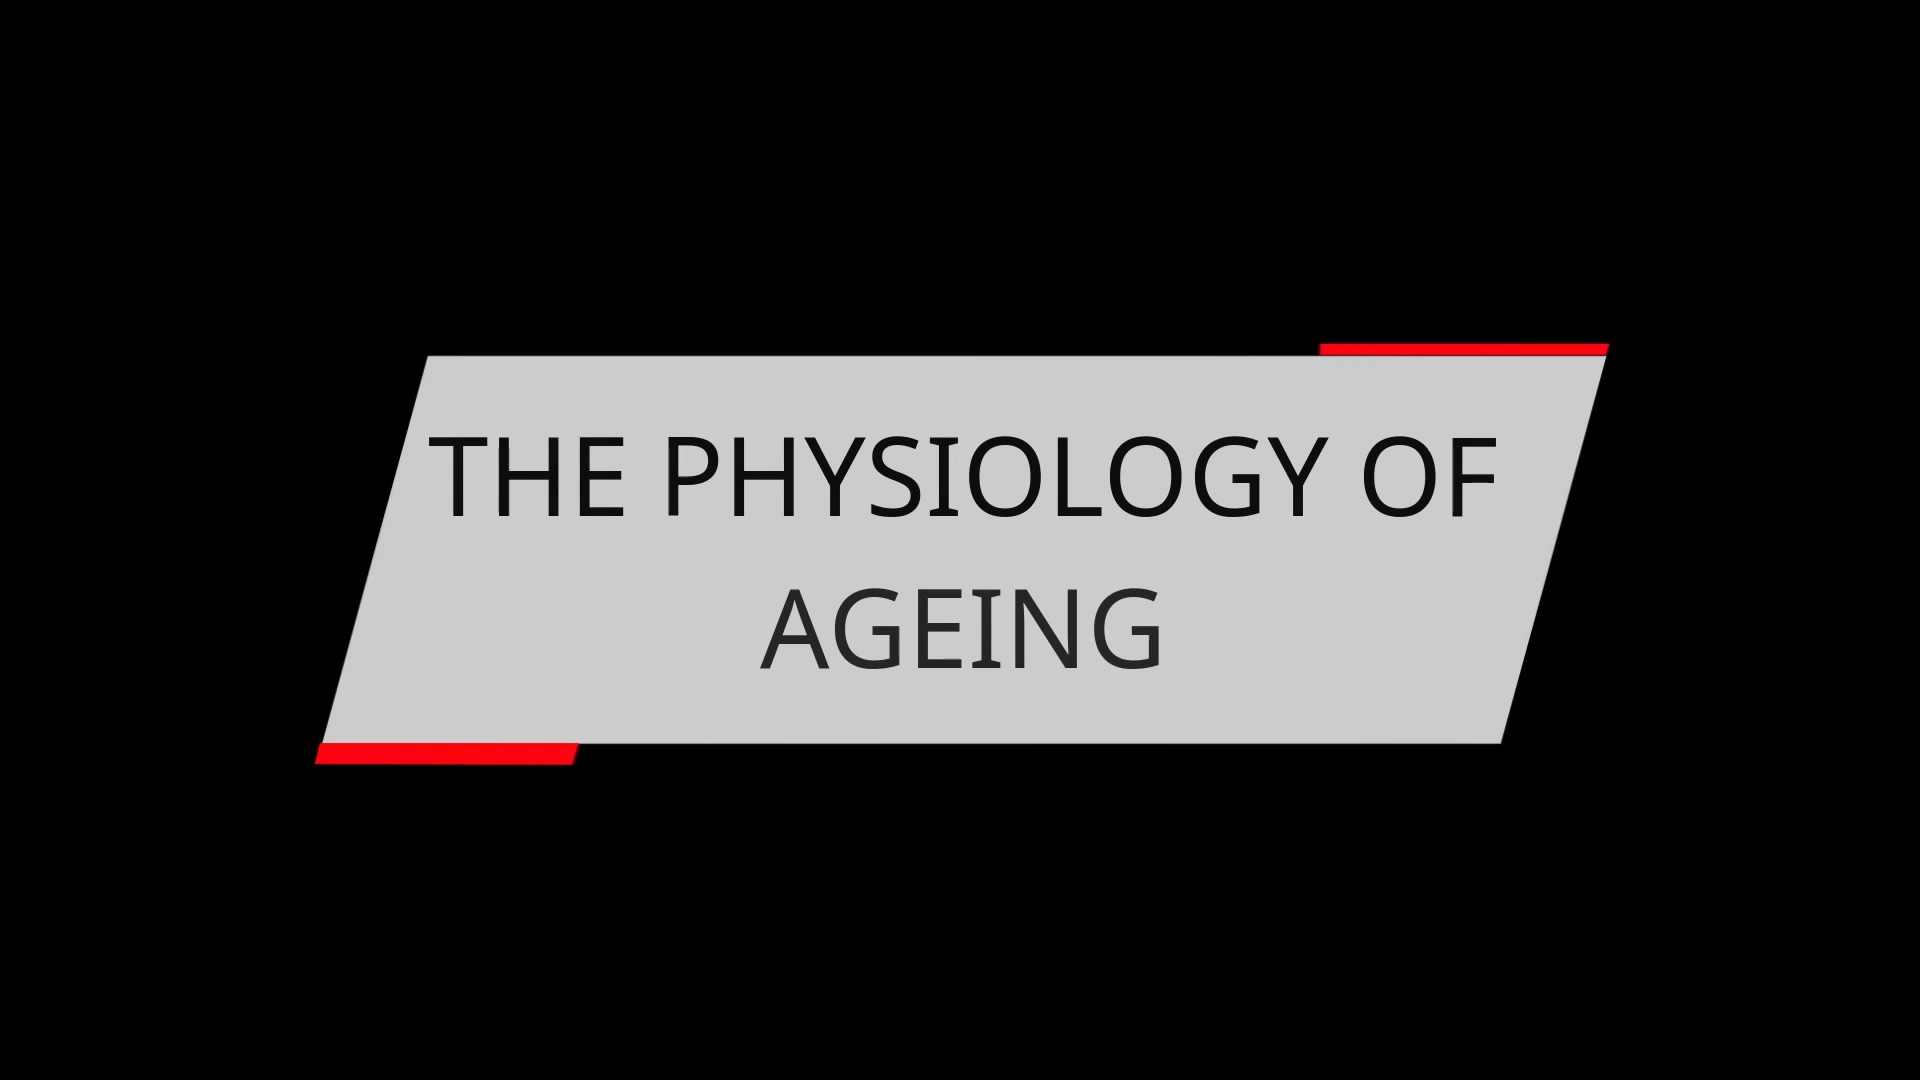 THE PHYSIOLOGY OF AGEING